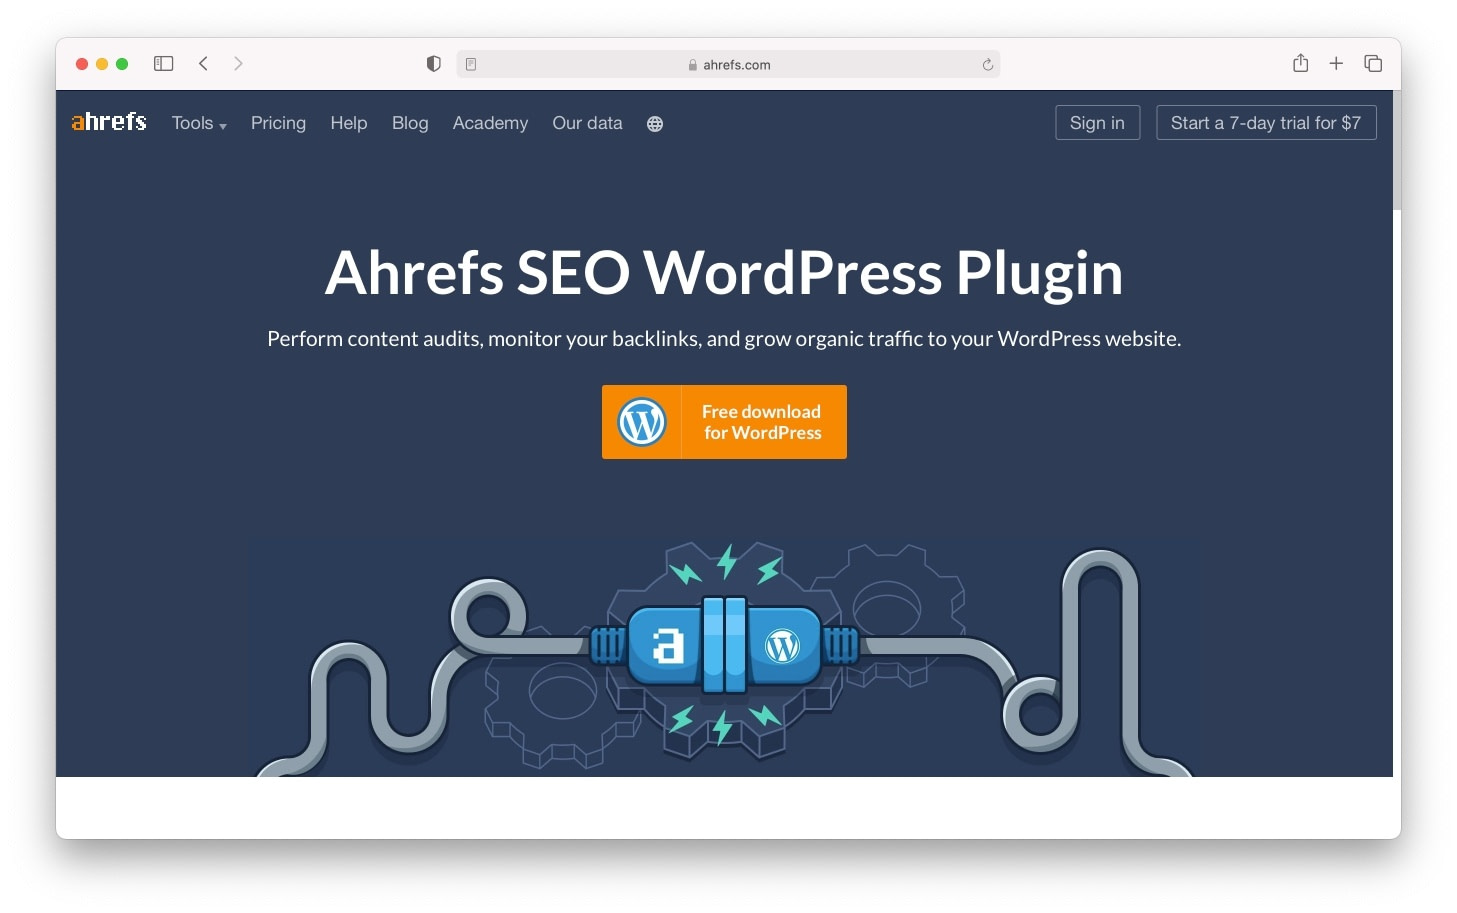 Ahrefs' stable of SEO tools includes a WordPress plugin